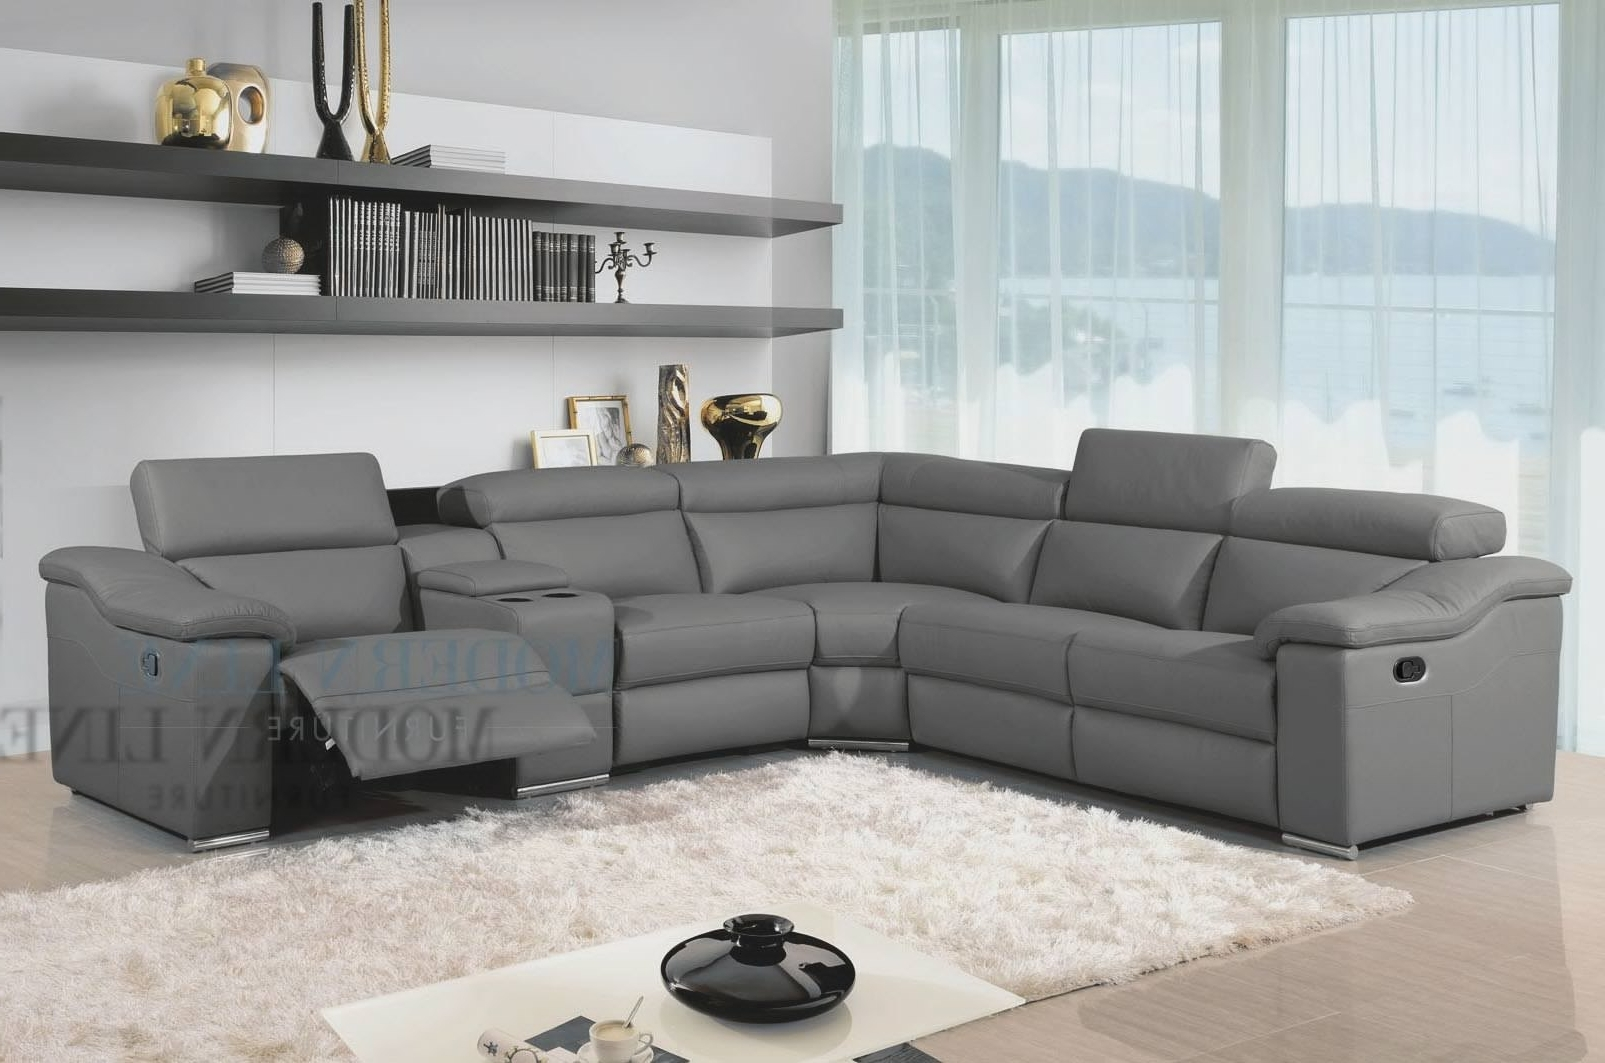 Most Recently Released Houzz Sectional Sofas With Regard To Sectional Sofa Design: Grey Leather Sectional Sofa Chaise (View 17 of 20)